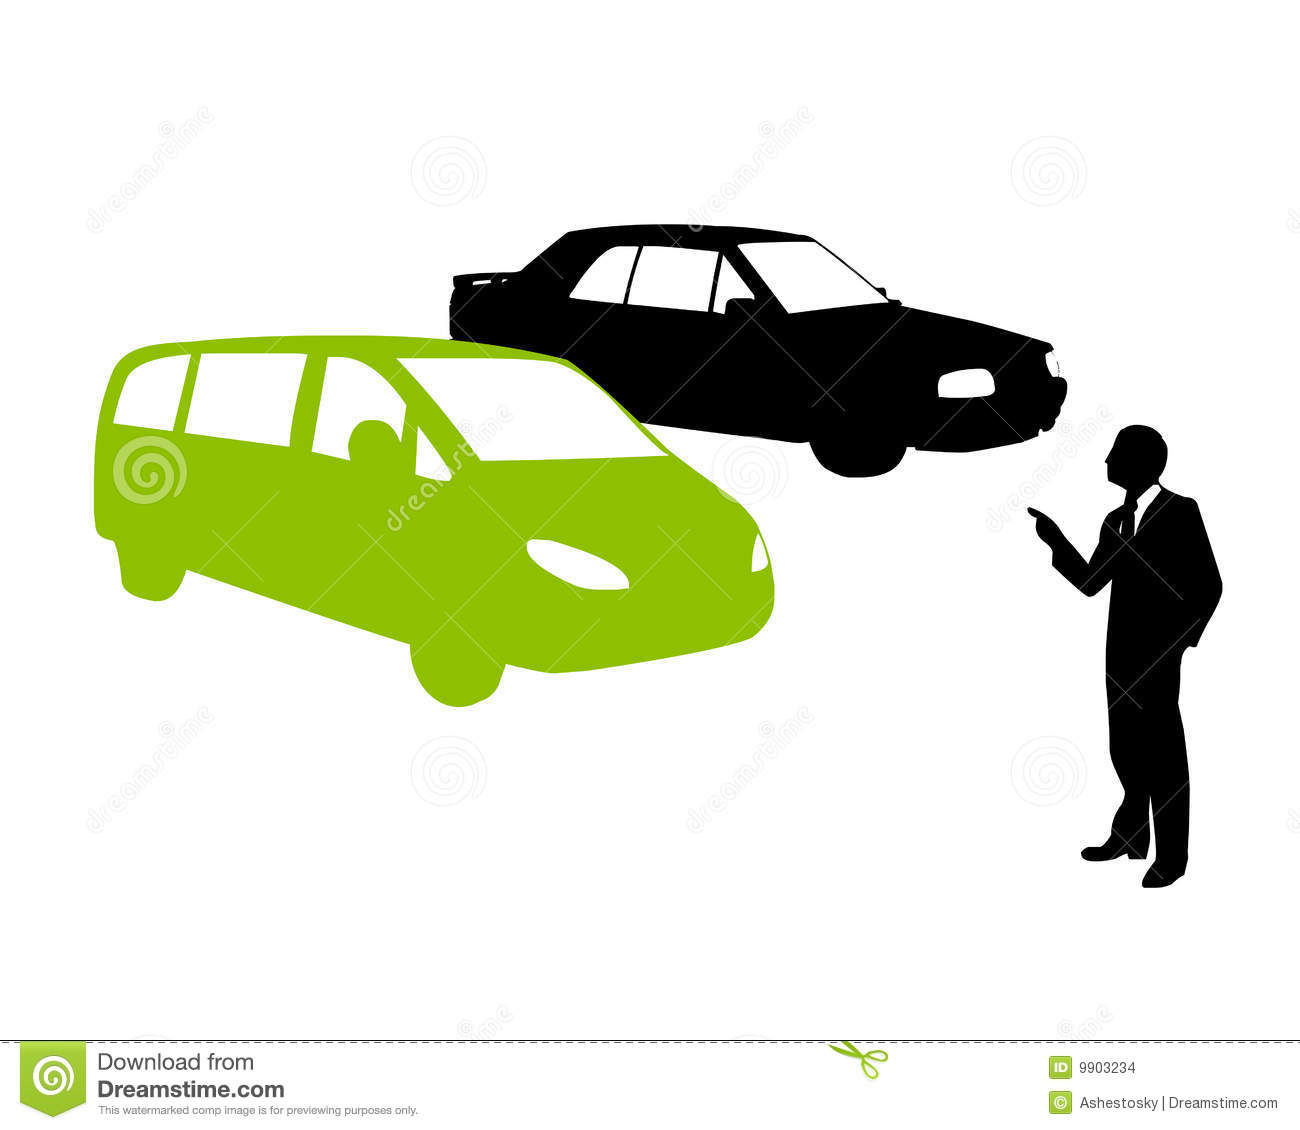 Buy Green Ecologic Car Stock Images - Image: 9903234: dreamstime.com/stock-images-buy-green-ecologic-car-image9903234